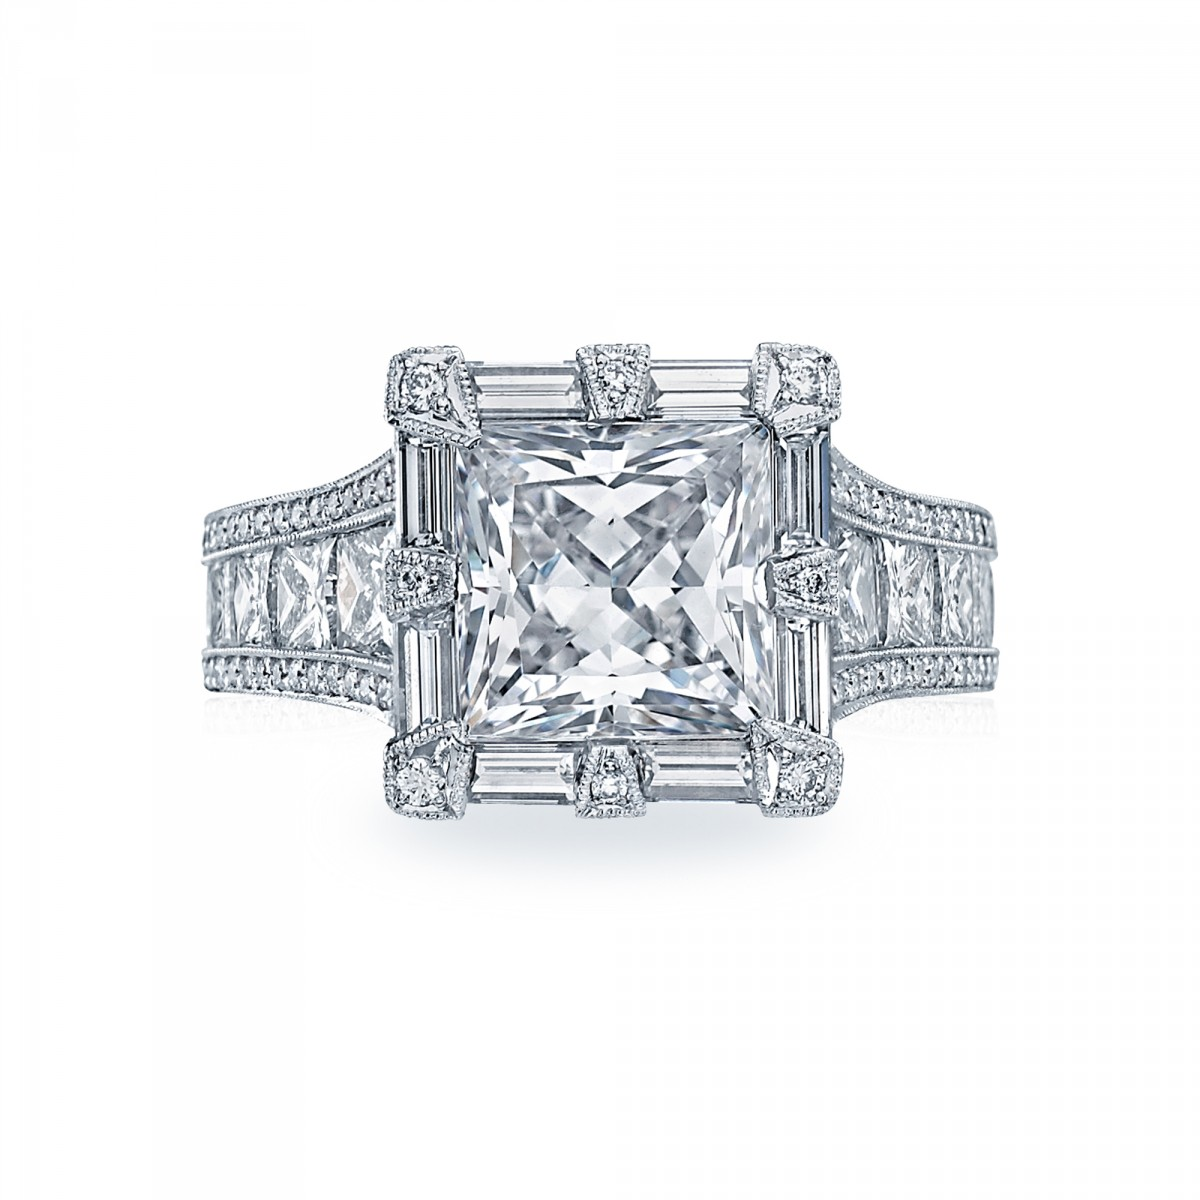 stunning-Princess-cut- diamond-ring